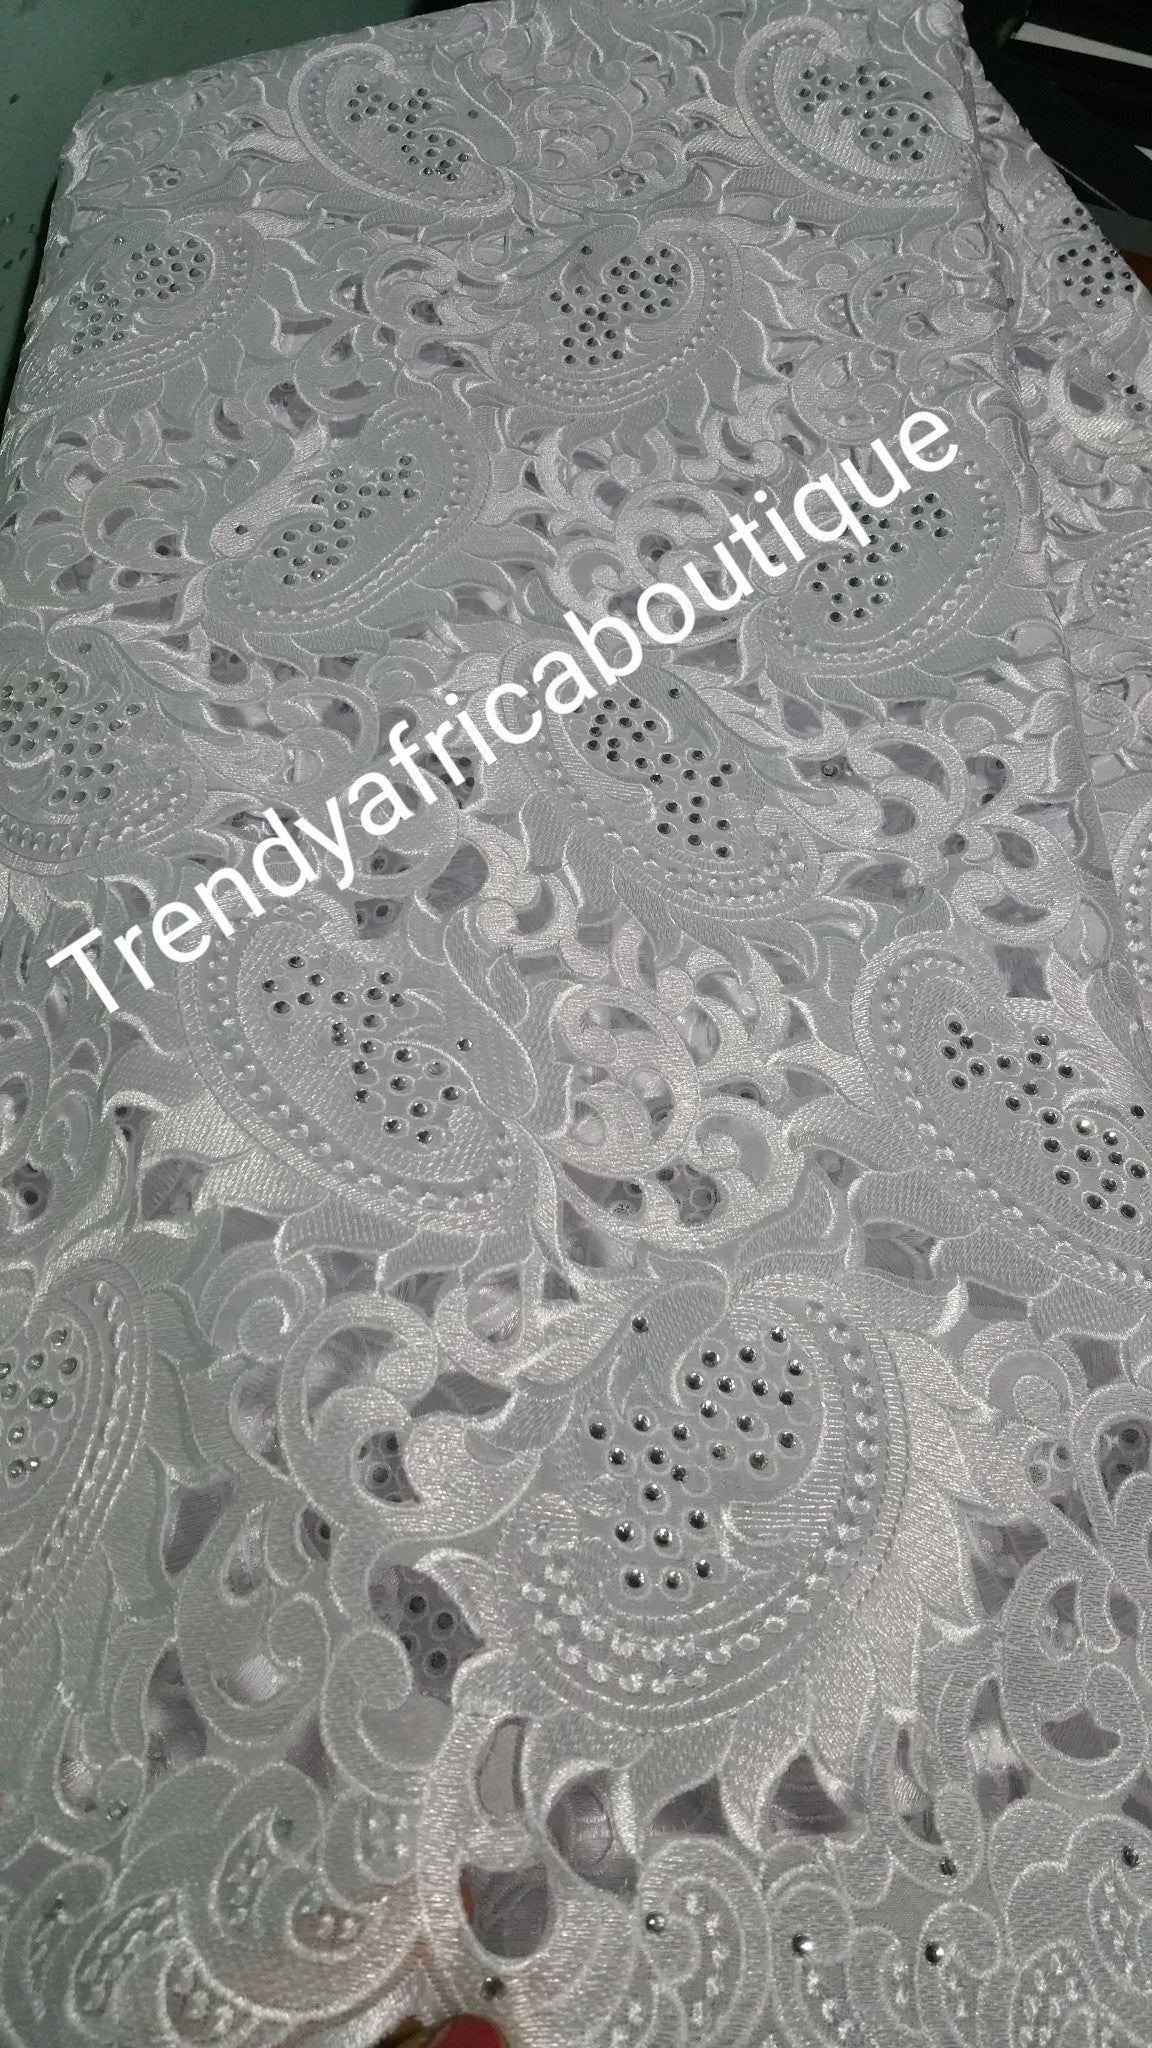 Big pure White/white hand cut swiss lace fabric. Sold per 5yds. Length. Celebrant white lace